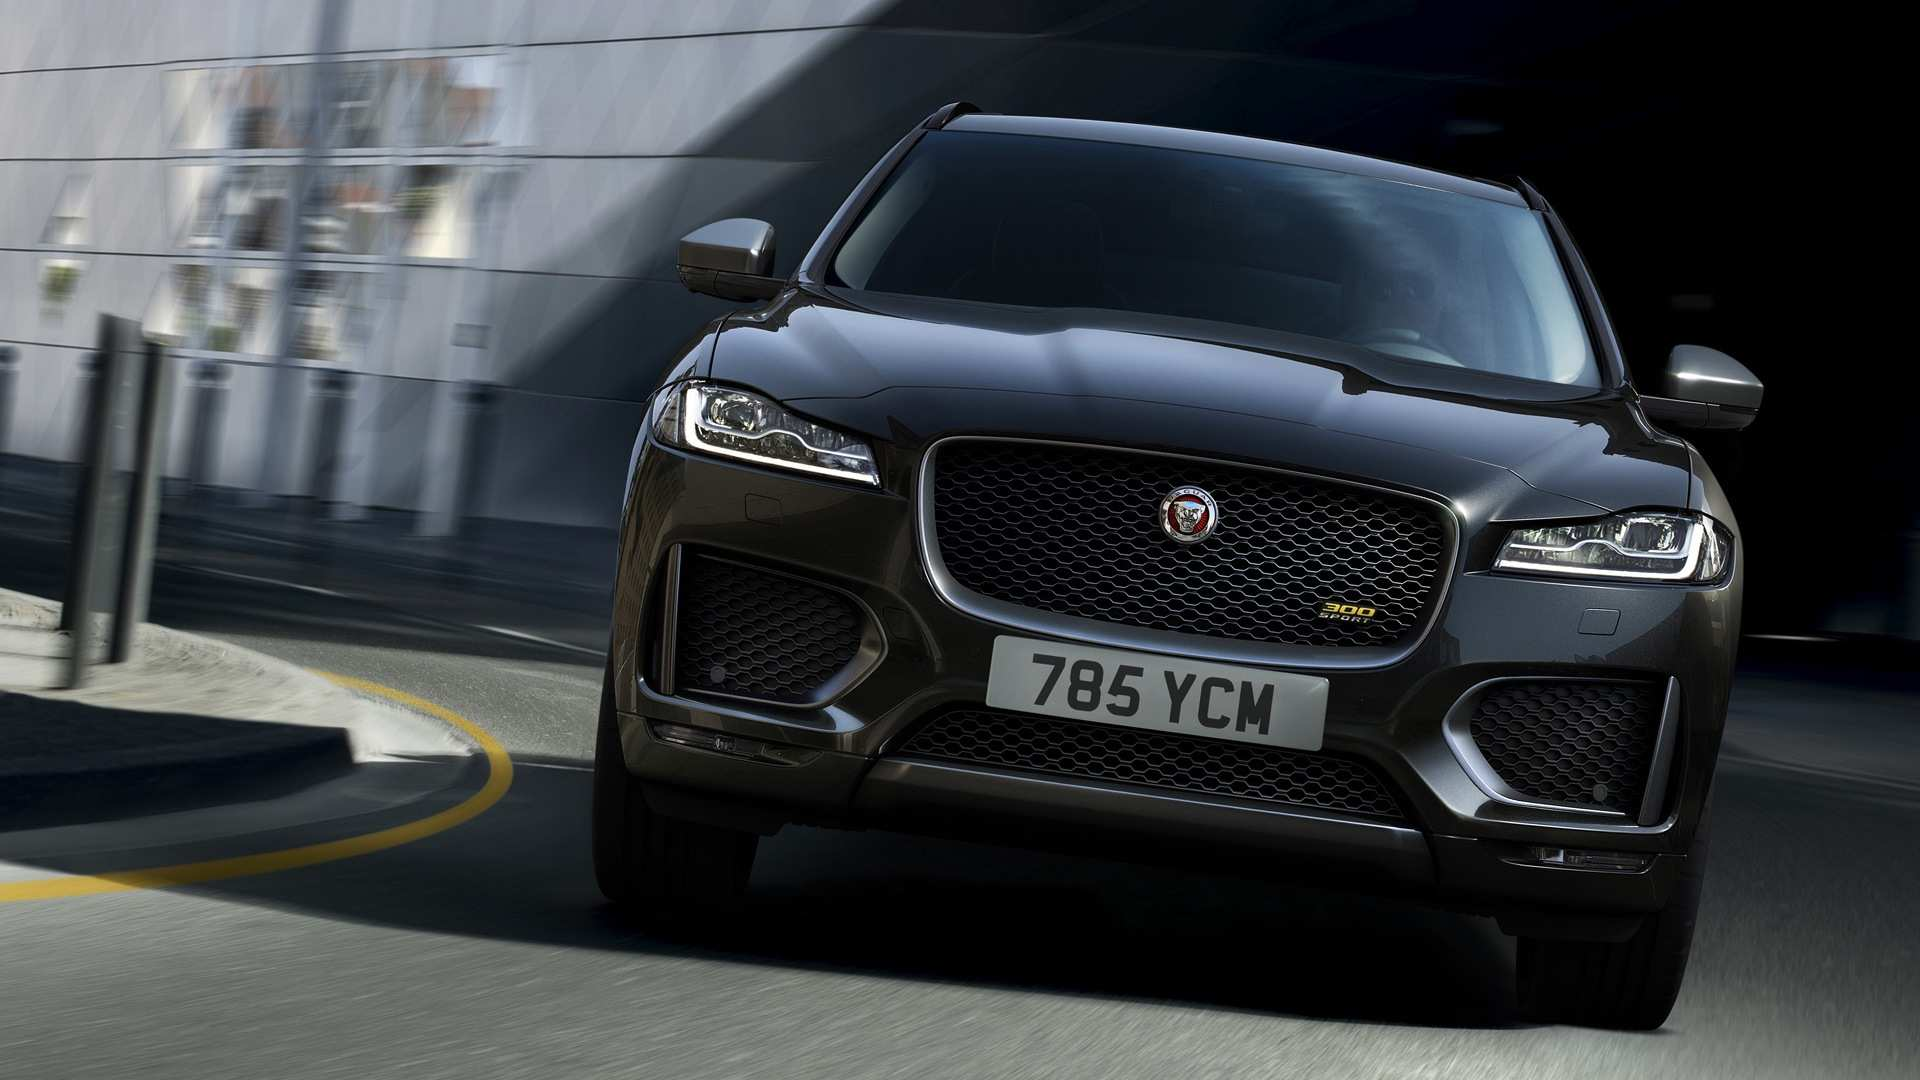 12 New Jaguar F Pace New Model 2020 Photos by Jaguar F Pace New Model 2020